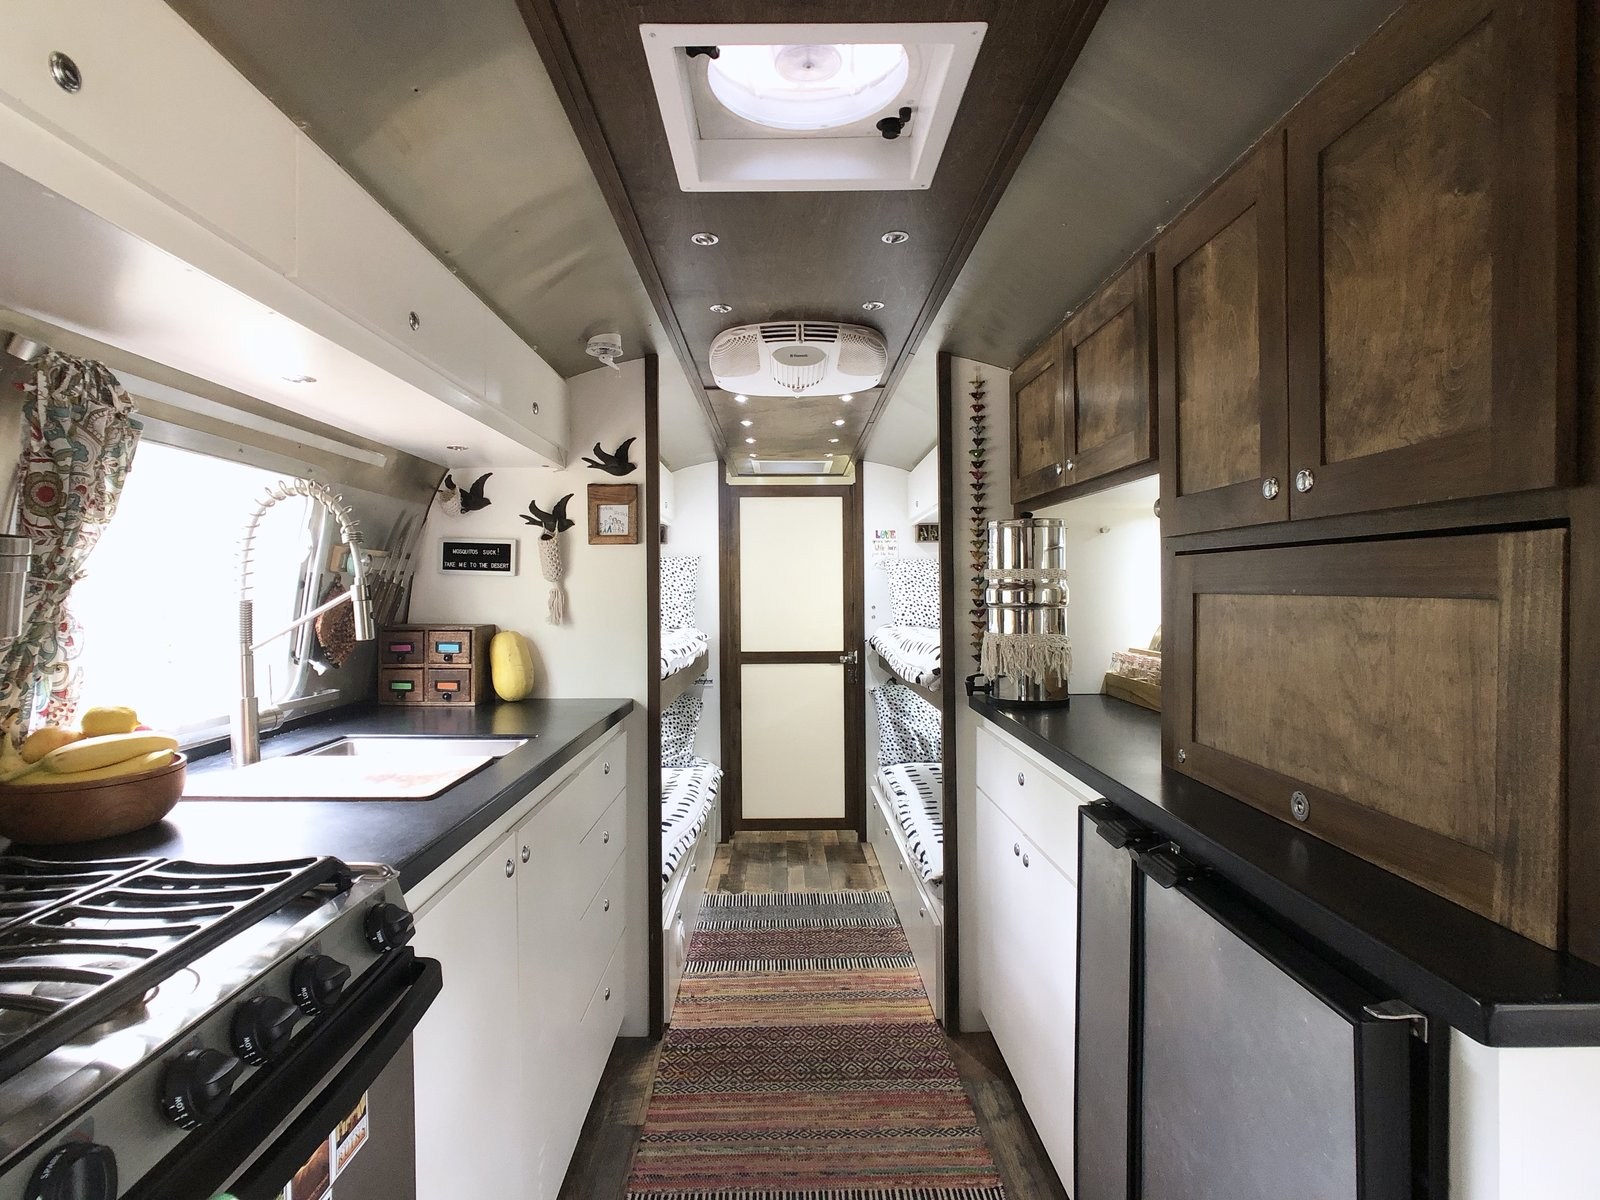 Kitchen, Medium Hardwood Floor, Undermount Sink, Refrigerator, White Cabinet, and Range A neutral color palette is combined with wood flooring and cabinetry to provide warmth in the airy interior space.    Photo 4 of 12 in A 1970s Airstream Is Revamped Into an Off-Grid Home For Six from 1972 Vintage Airstream Trailer